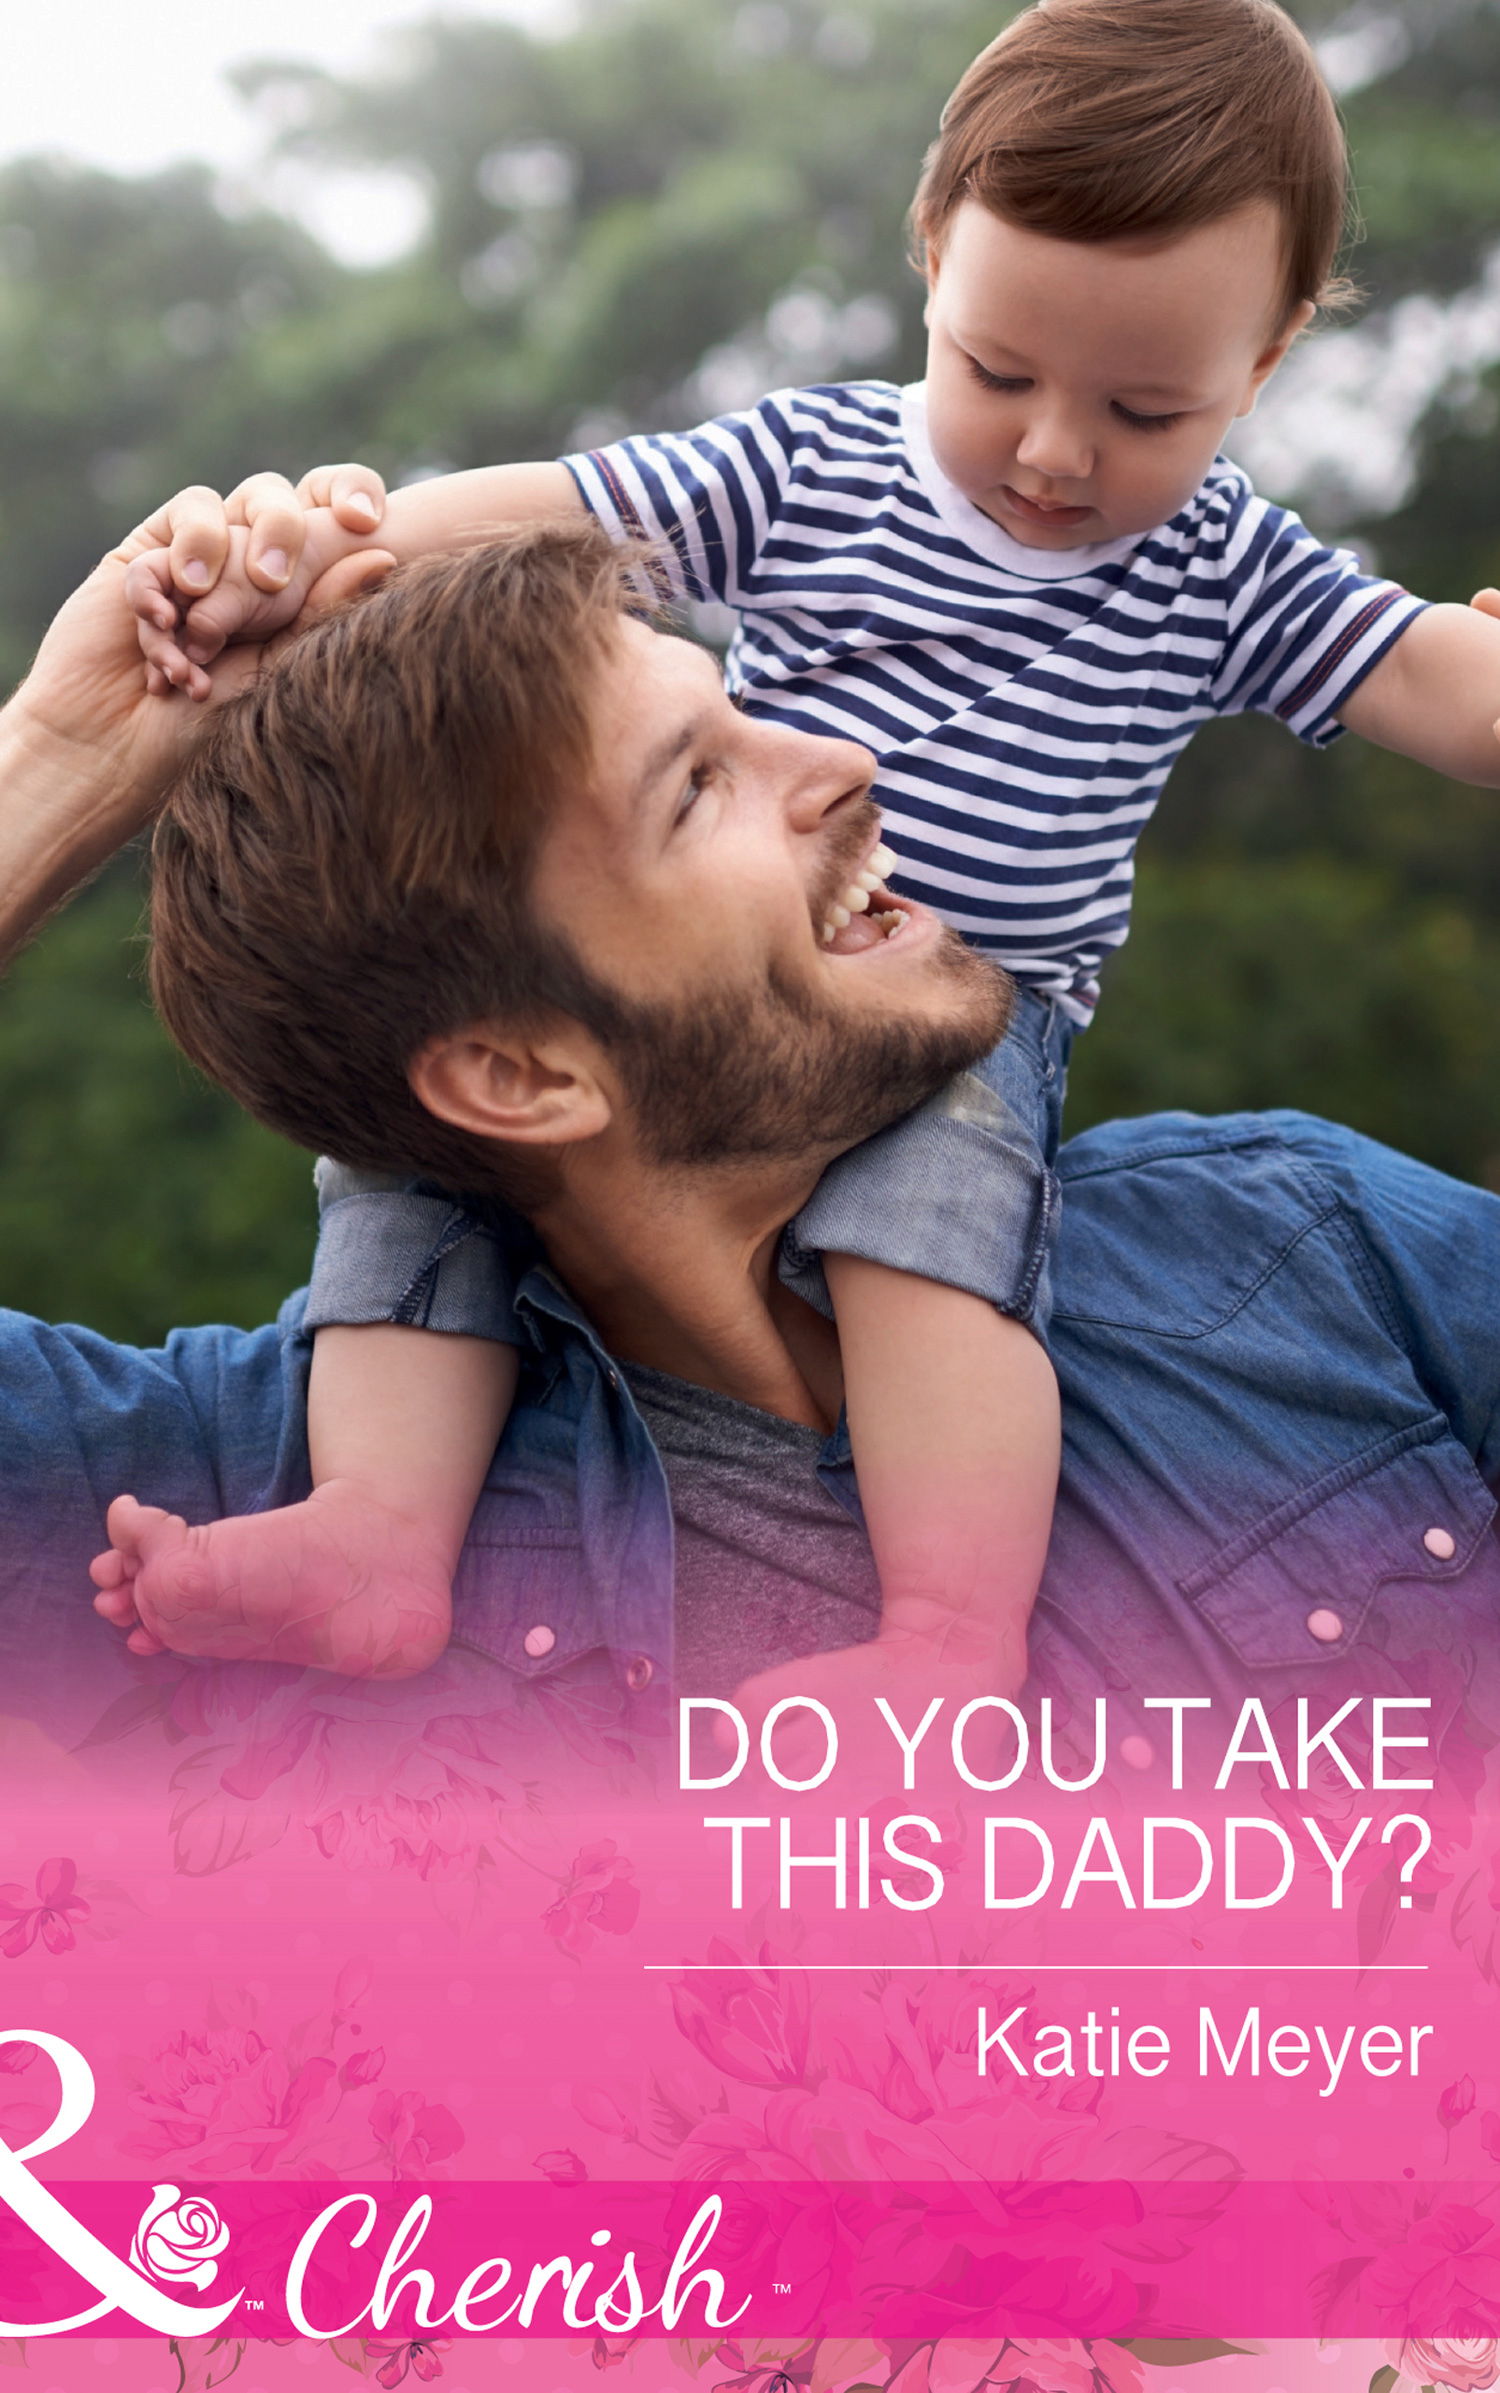 Do You Take This Daddy?